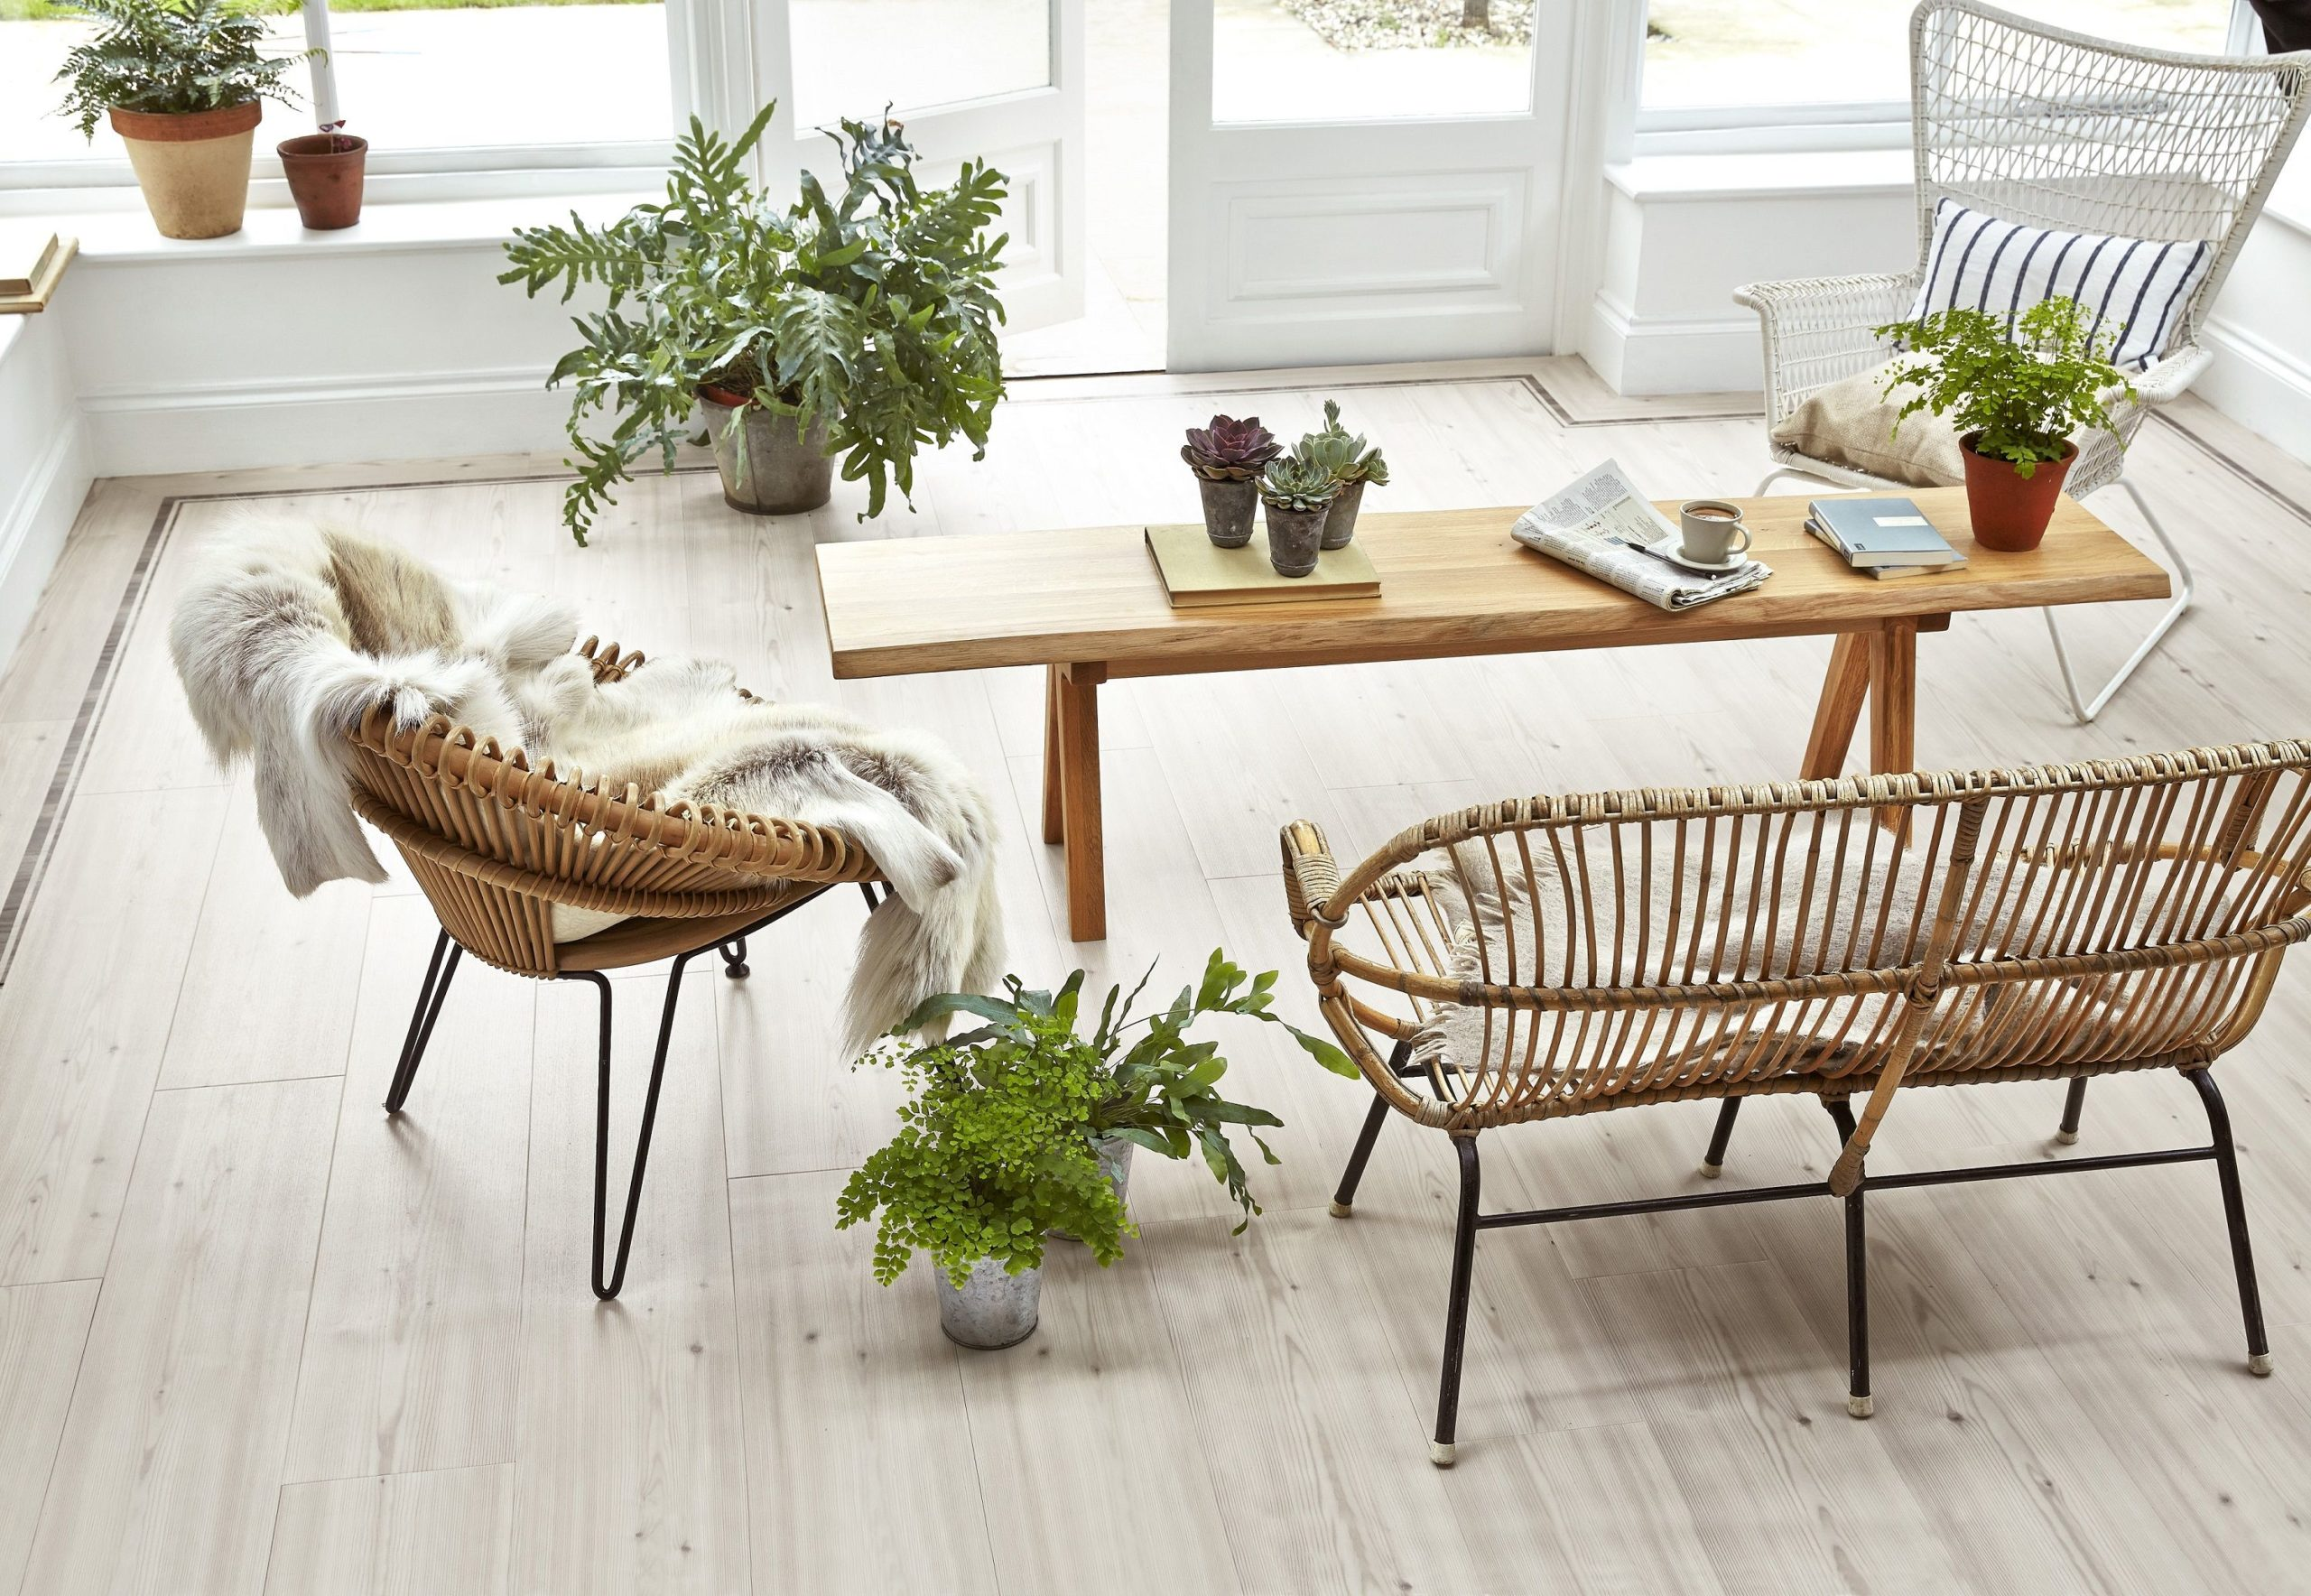 1490185824-amtico-signature-chalked-pine-offset-stripe-border-pearl-wash-wood-chalked-pine-from-70-per-sq-m2